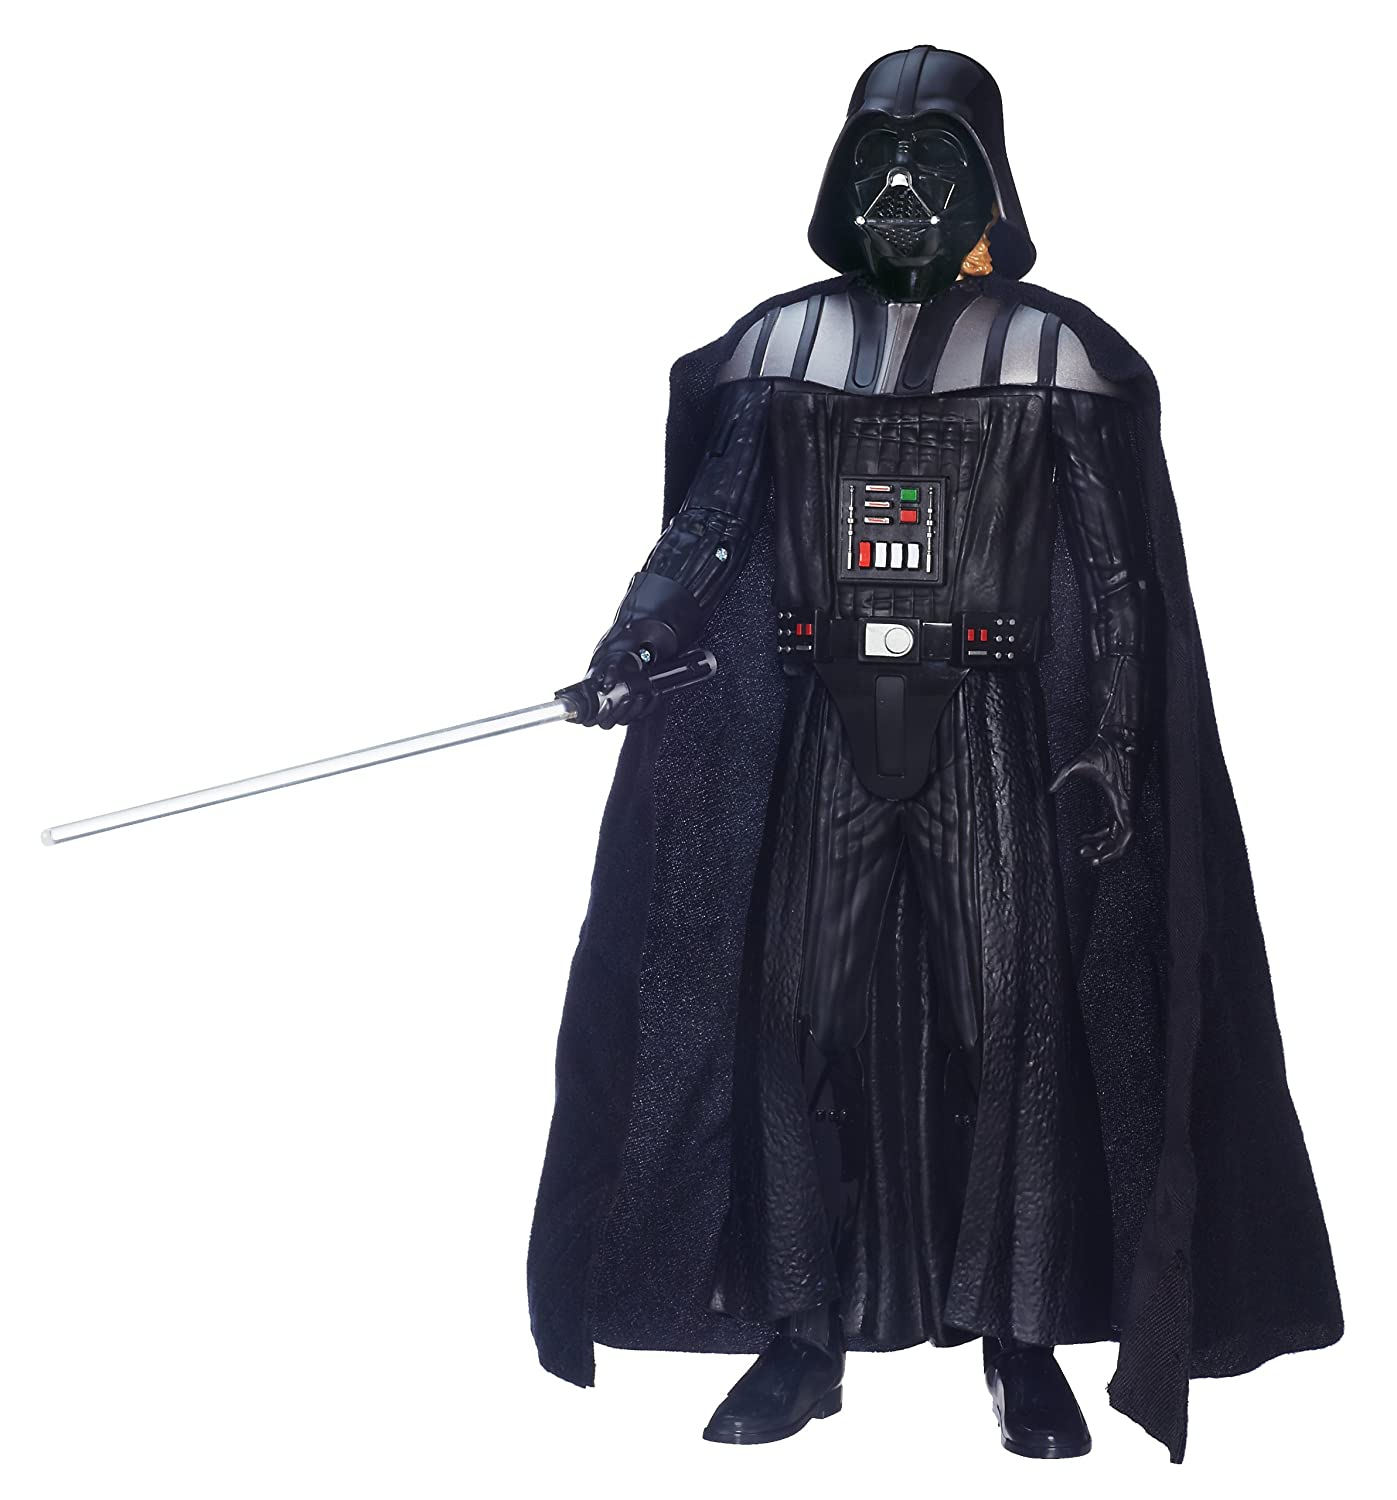 Star Wars - Figura de Ultimate Darth Vader (Hasbro A2177e27): Amazon.es: Juguetes y juegos